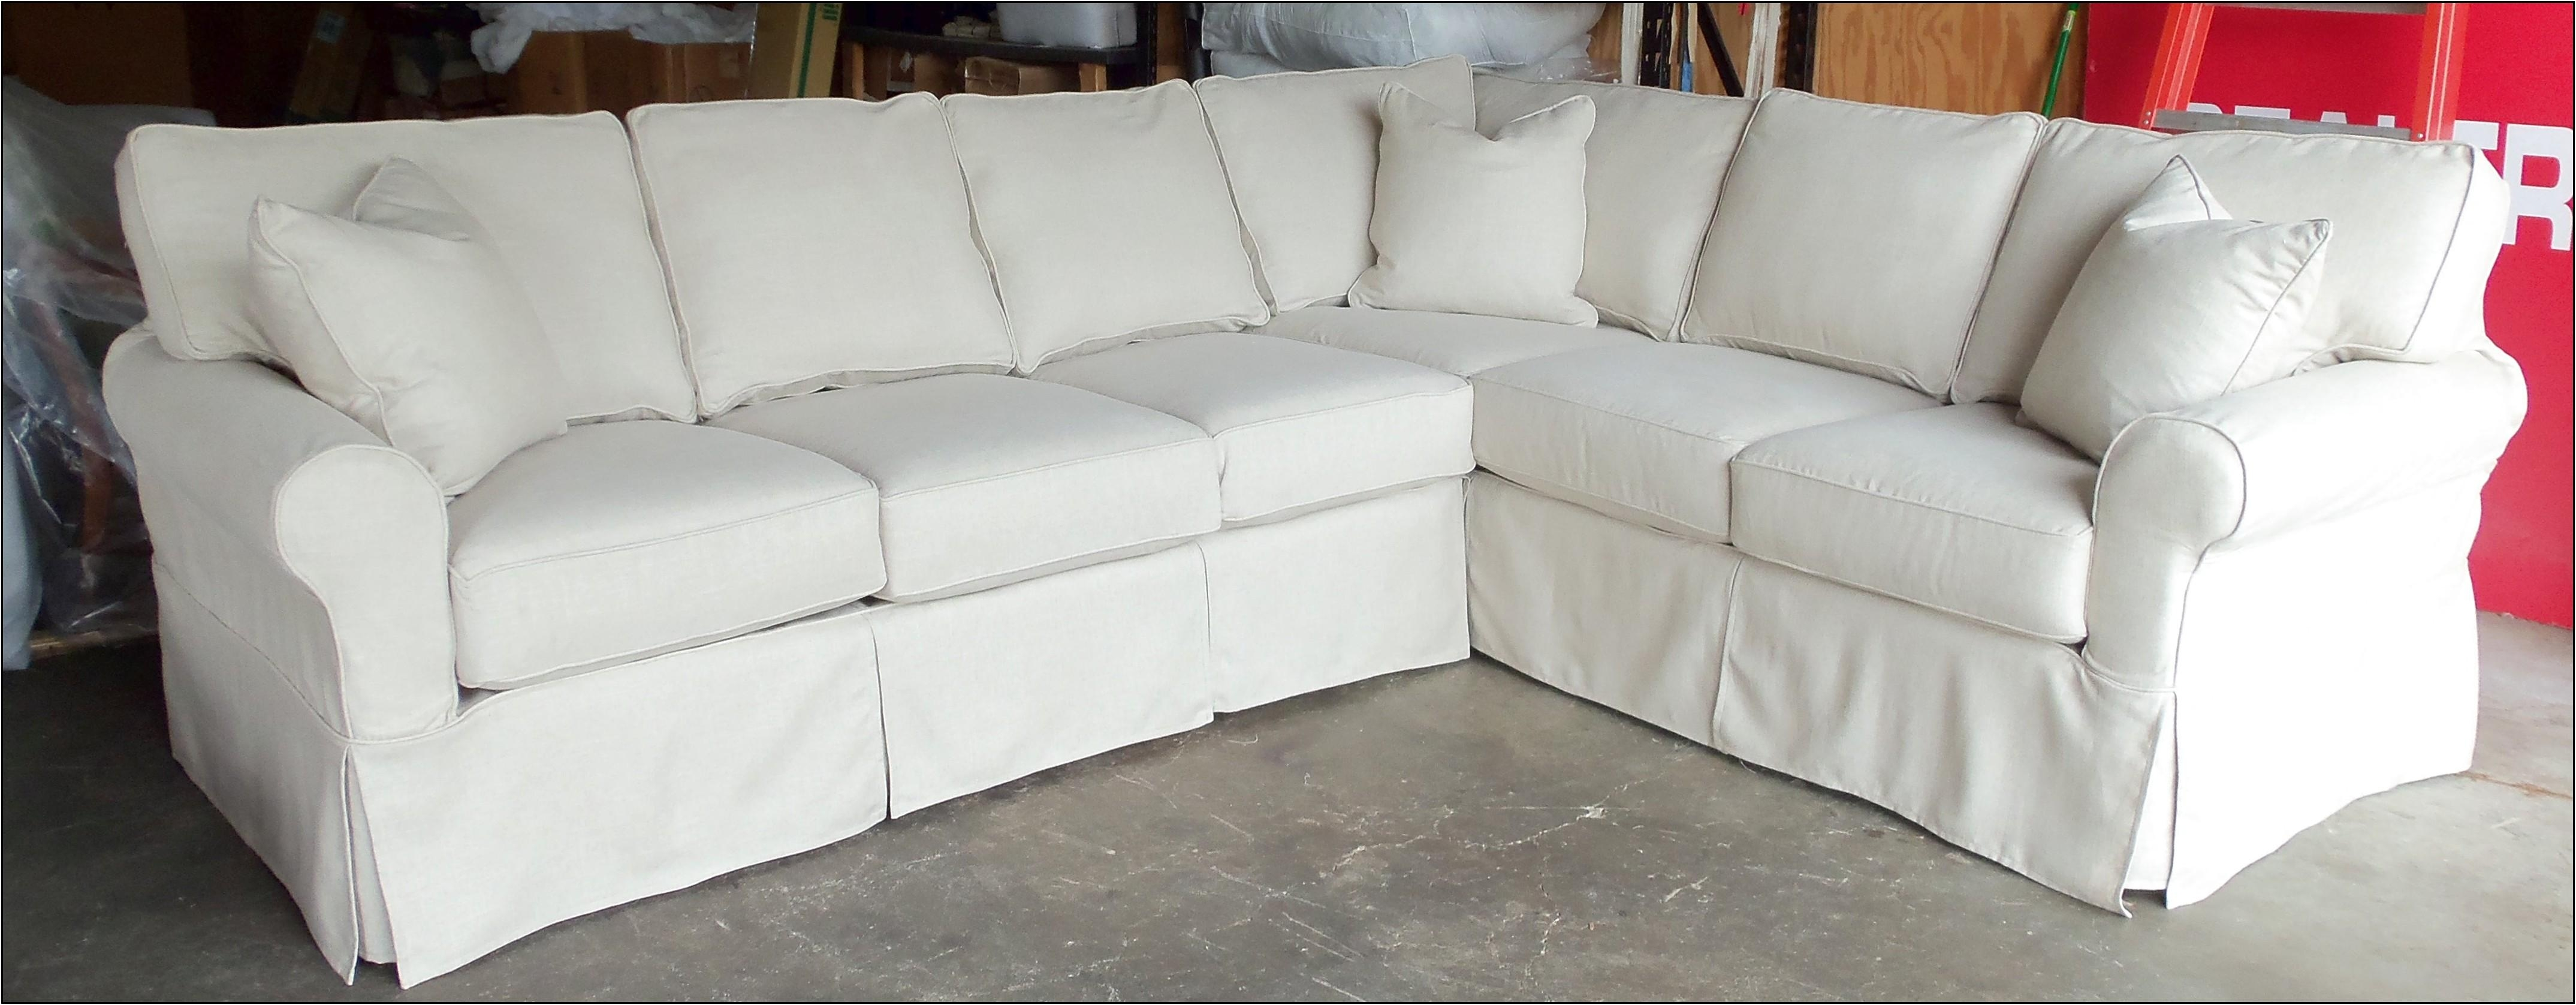 Furniture: Renew Your Living Space With Fresh Sectional Walmart In Slipcover For Leather Sectional Sofas (View 5 of 21)